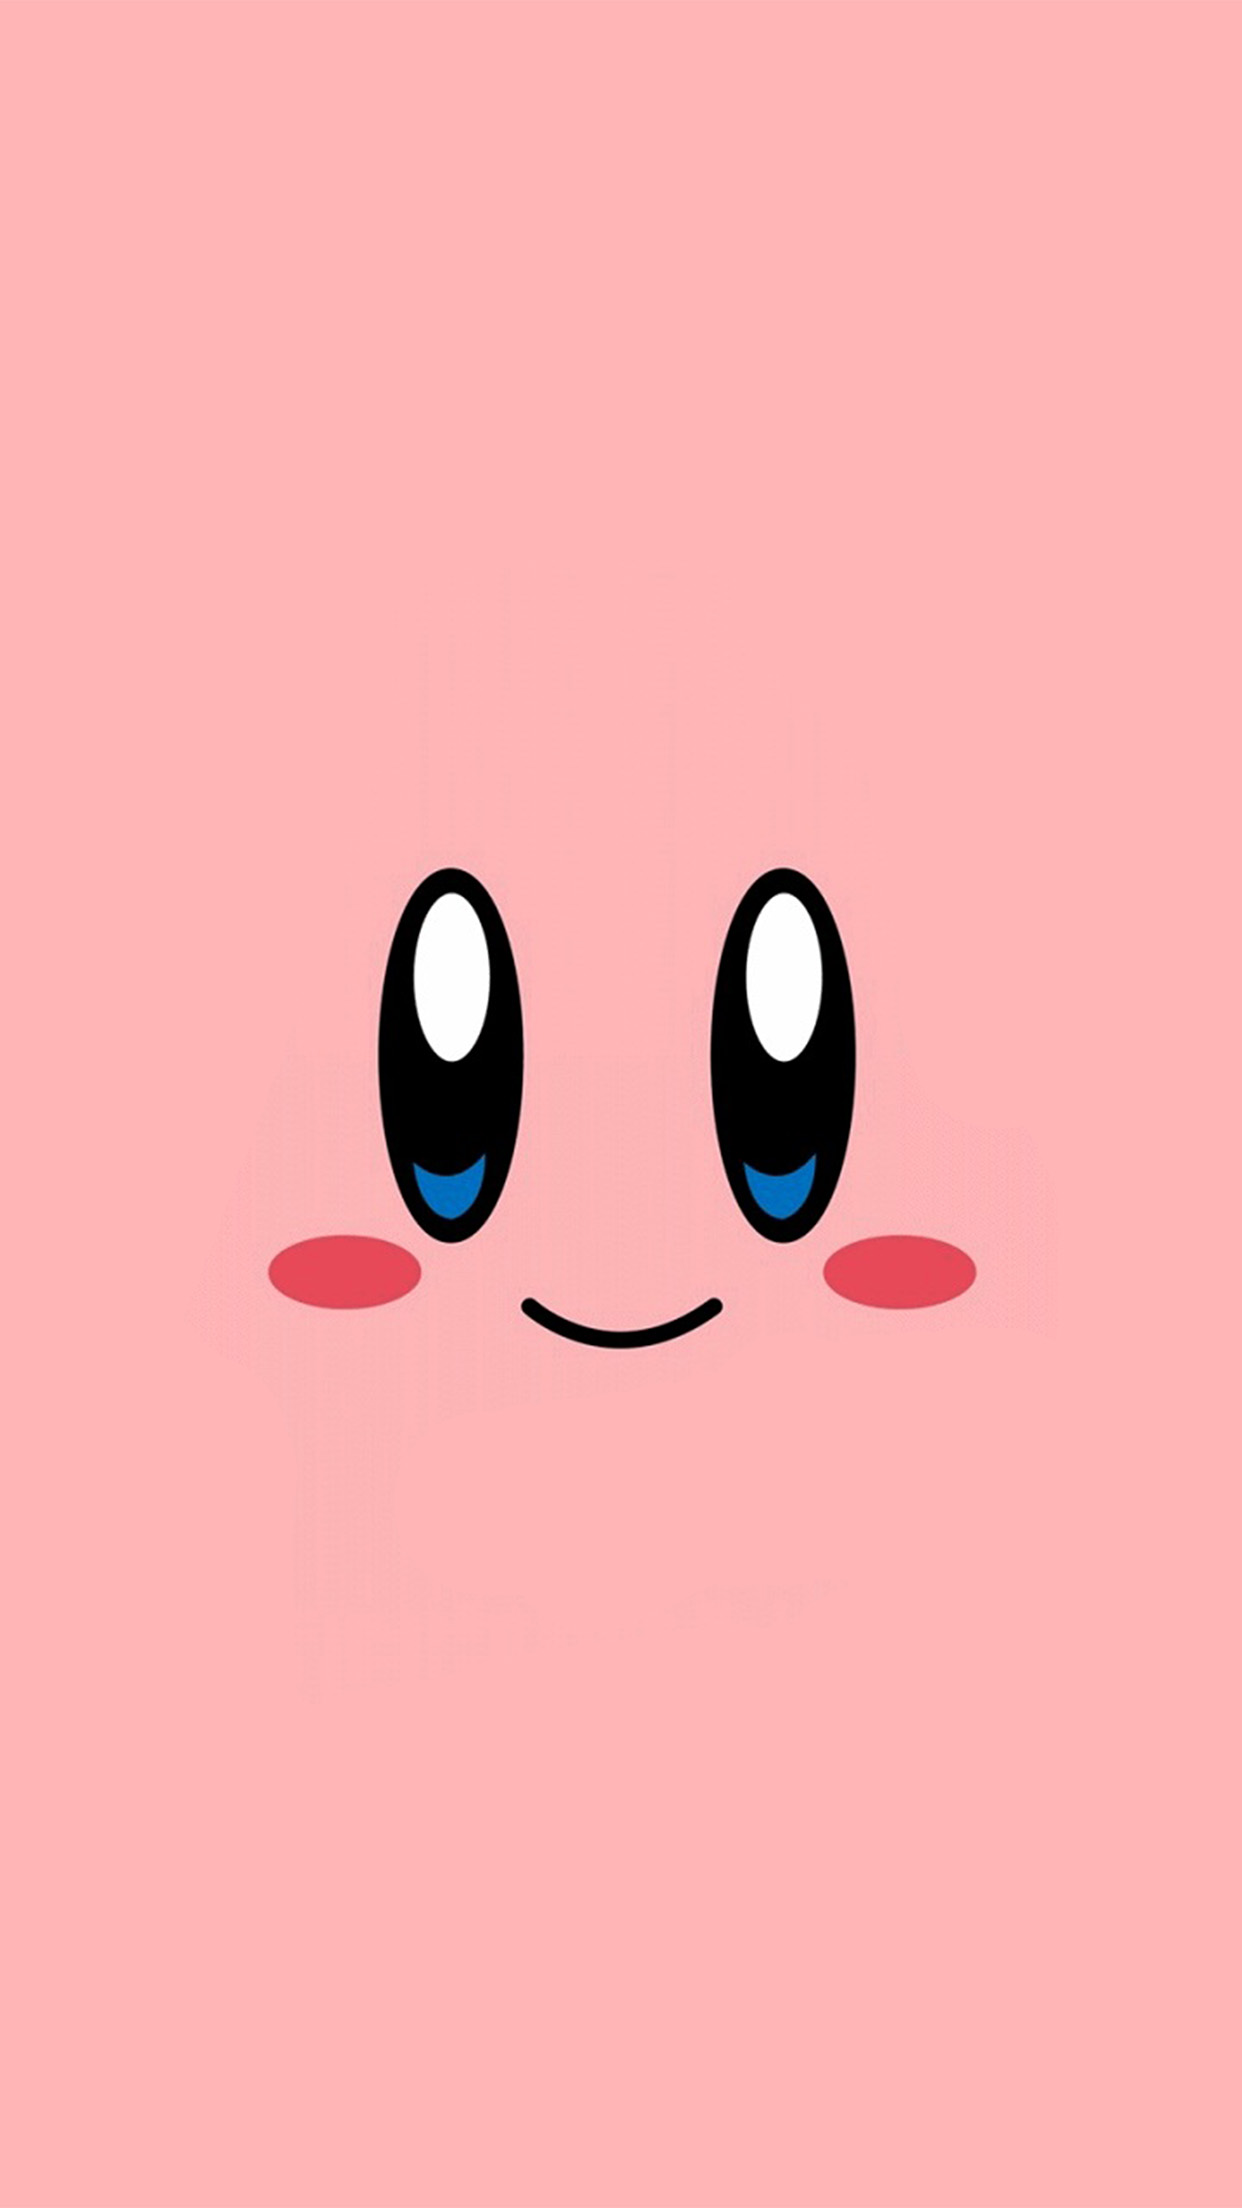 Cute Animated Wallpapers For Android Az54 Kirby Pink Face Cute Illustration Art Wallpaper